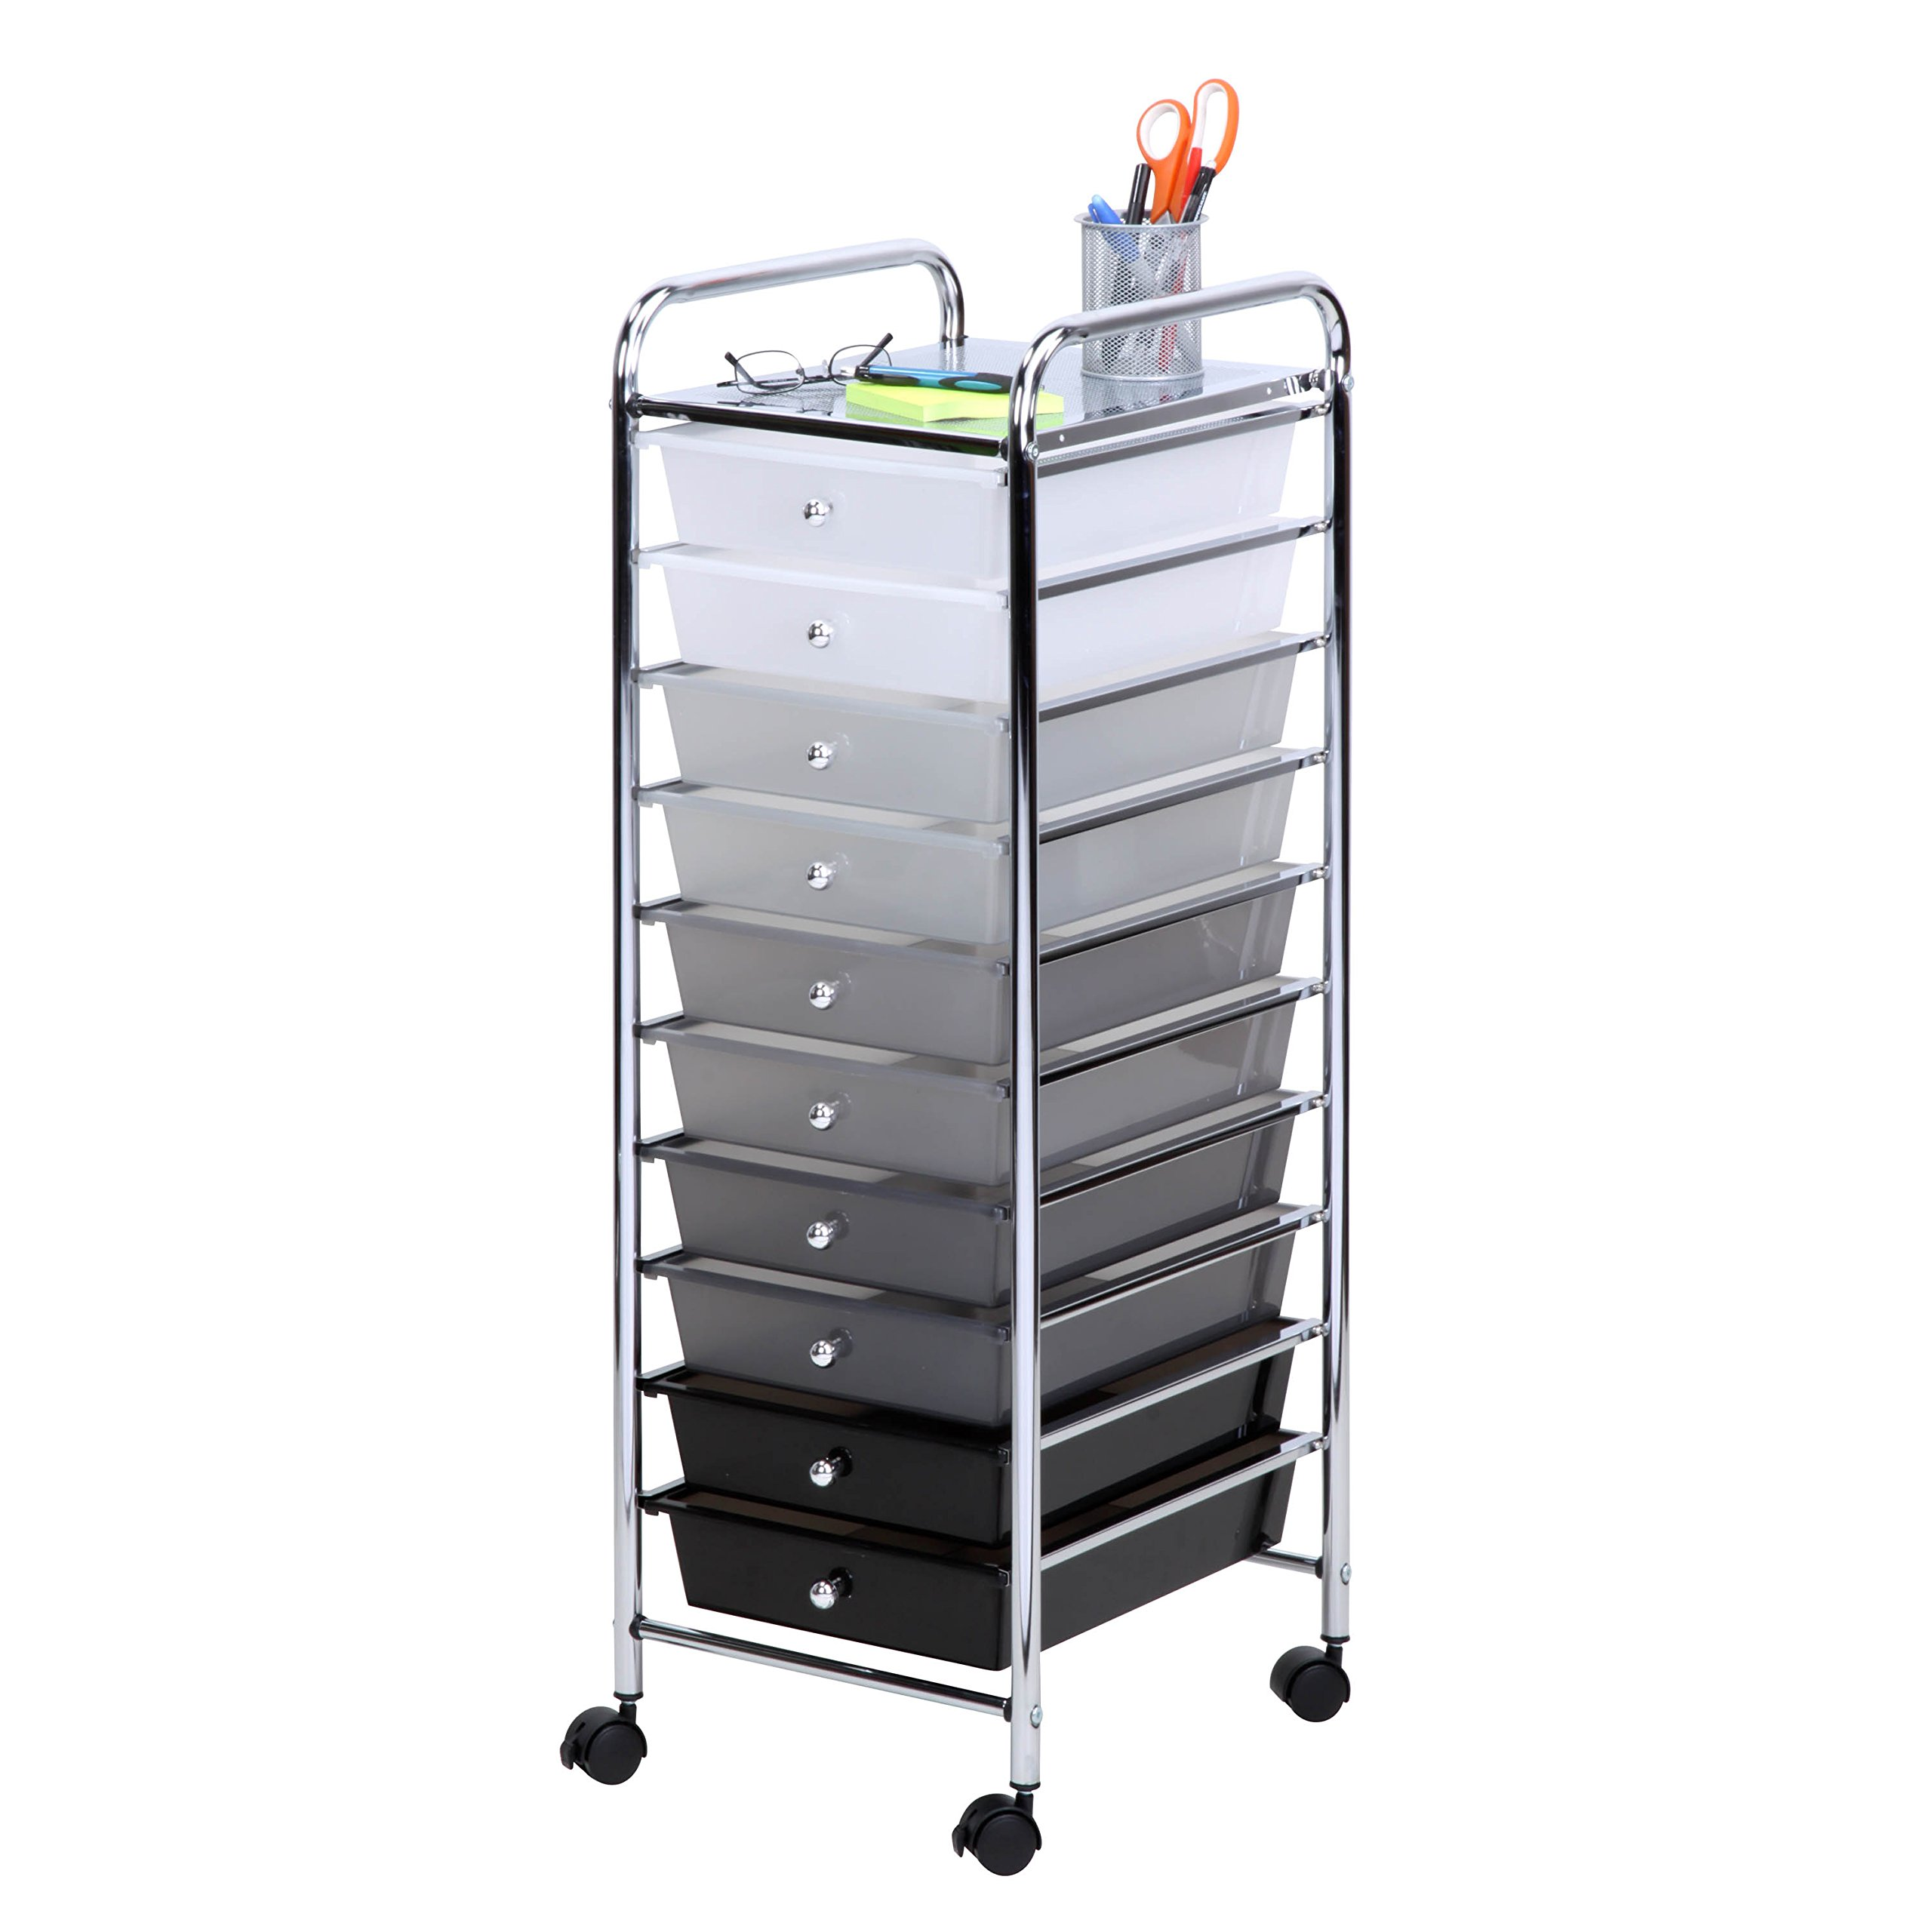 Honey-Can-Do CRT-05255 10 Drawer Shaded Storage cart, 37.8 in L x 15.94 in W x 6.5 in H (96 cm L x 40.5 cm W x 16.5 cm H), Multicolor/Gray/Black/White by Honey-Can-Do